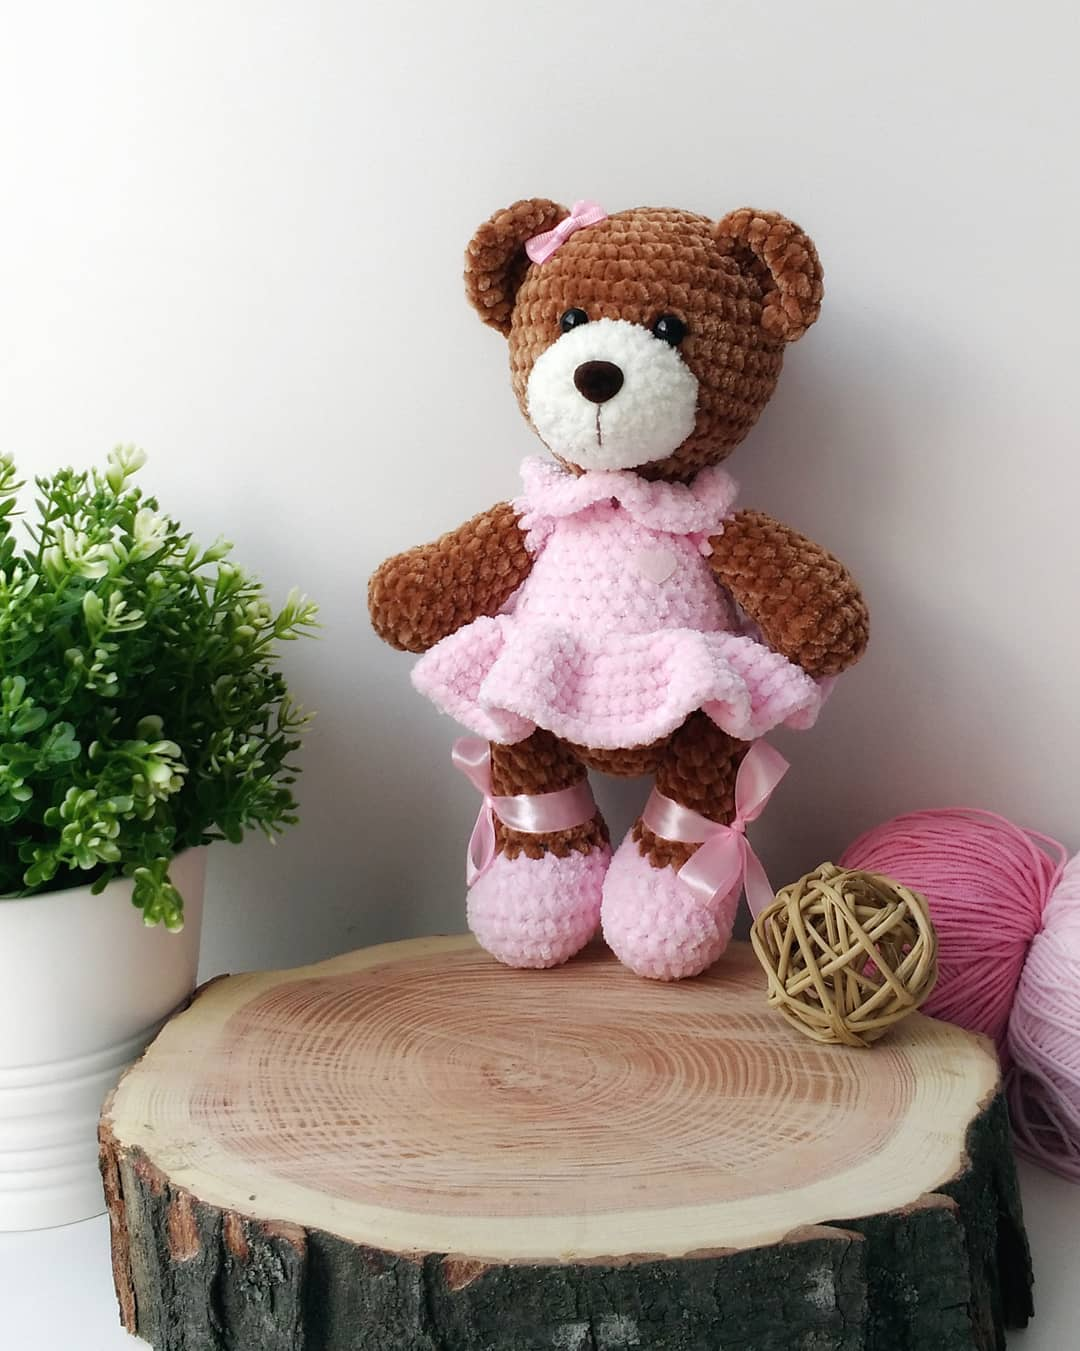 Sweet Bear Crochet Plush Pattern Amiguroom Toys